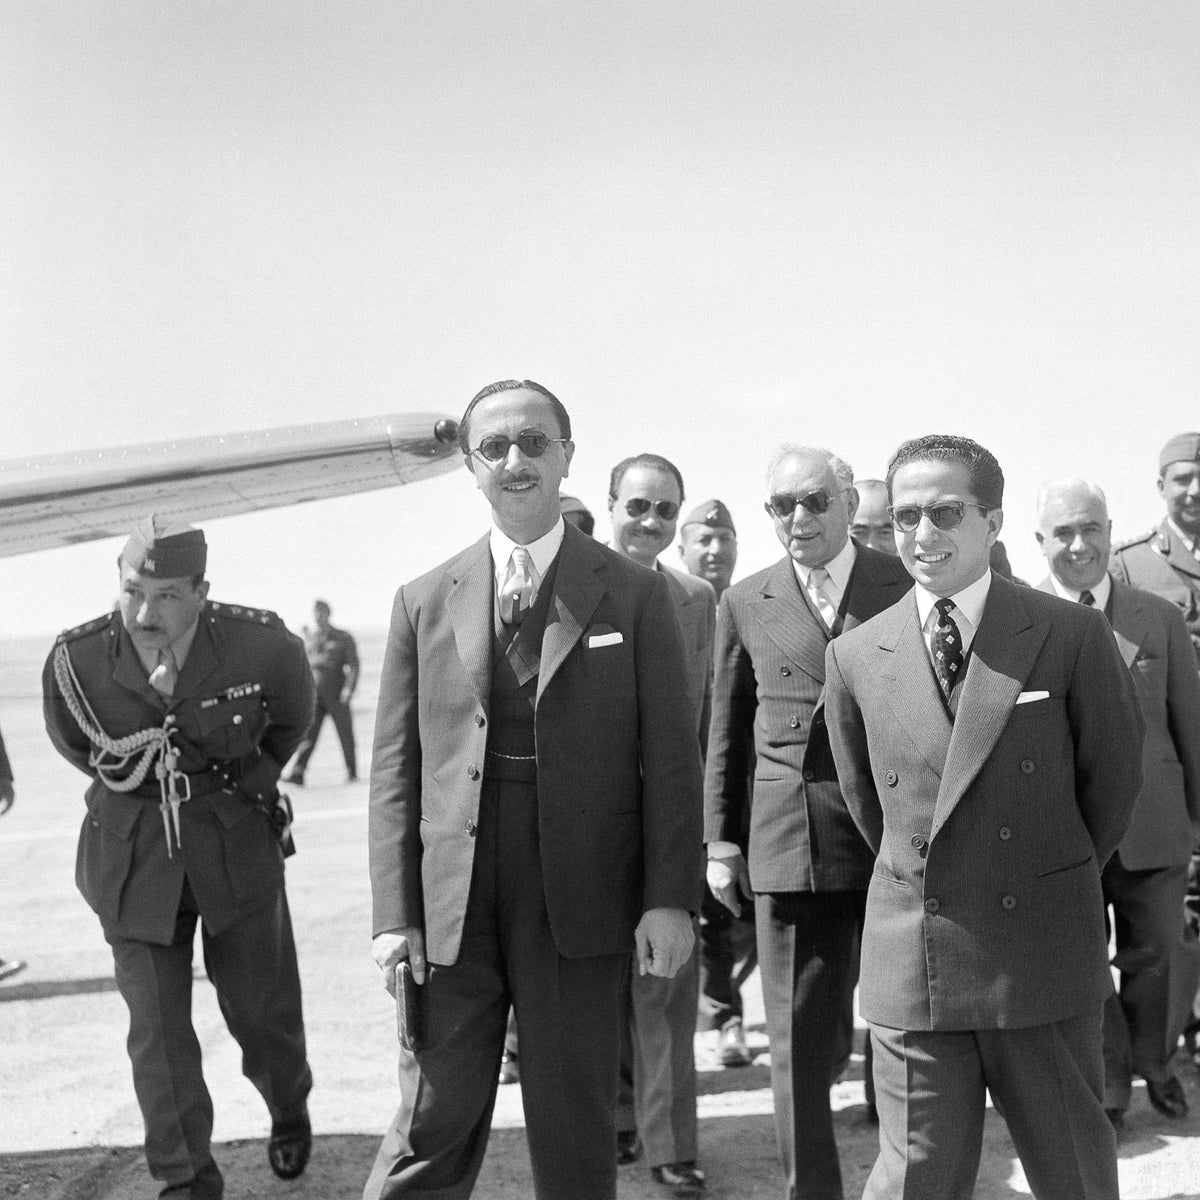 Foreground, from left: Iraq's regent Abd al-Ilah and King Faisal II, with Prime Minister Nuri Sa'id (between them).